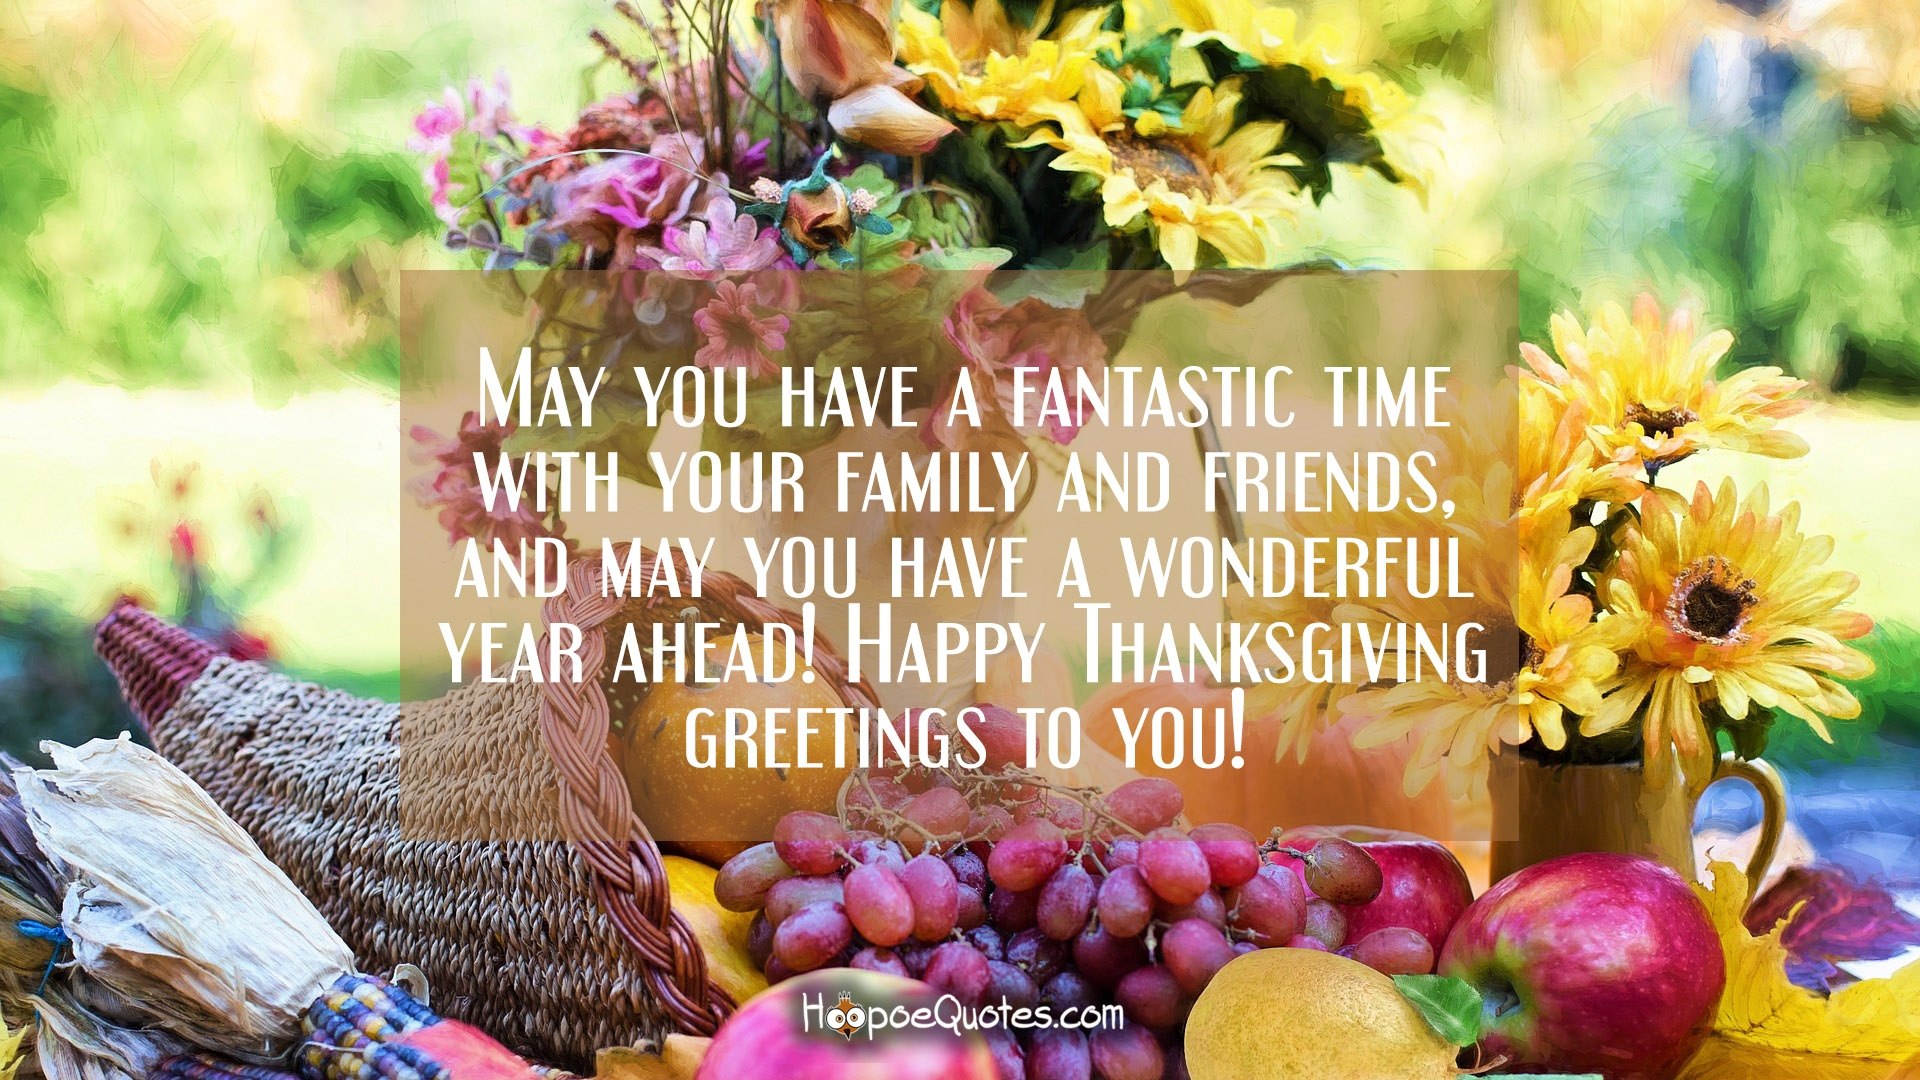 May You Have A Fantastic Time With Your Family And Friends And May You Have A Wonderful Year